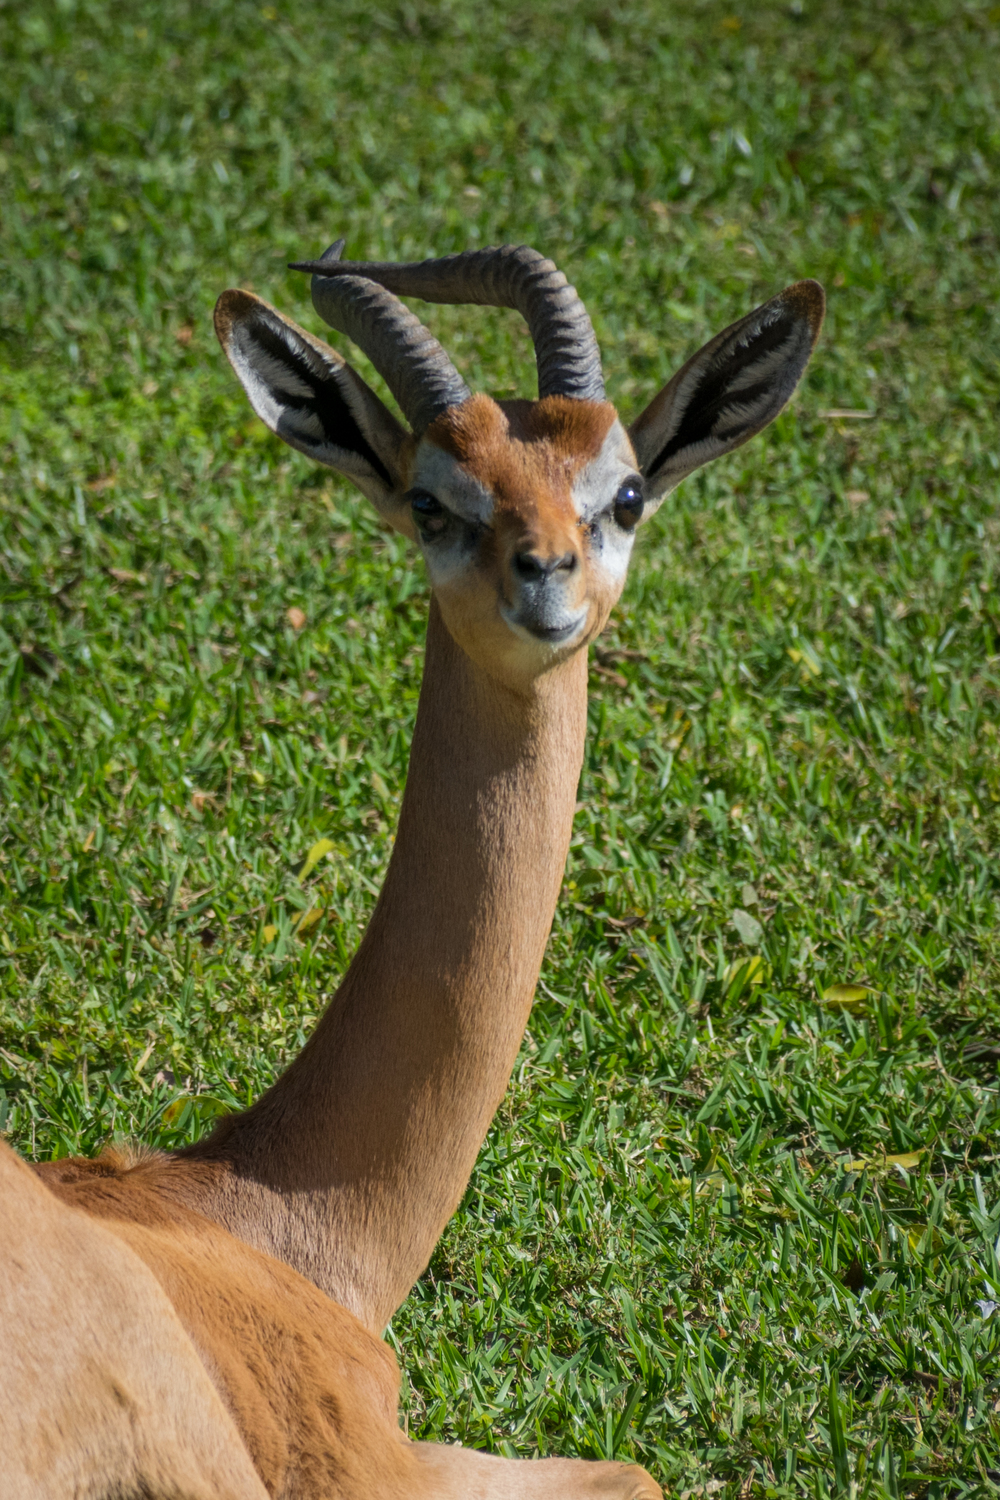 This  Gerenuk  definitely has some serious personality squeezed into that little face!